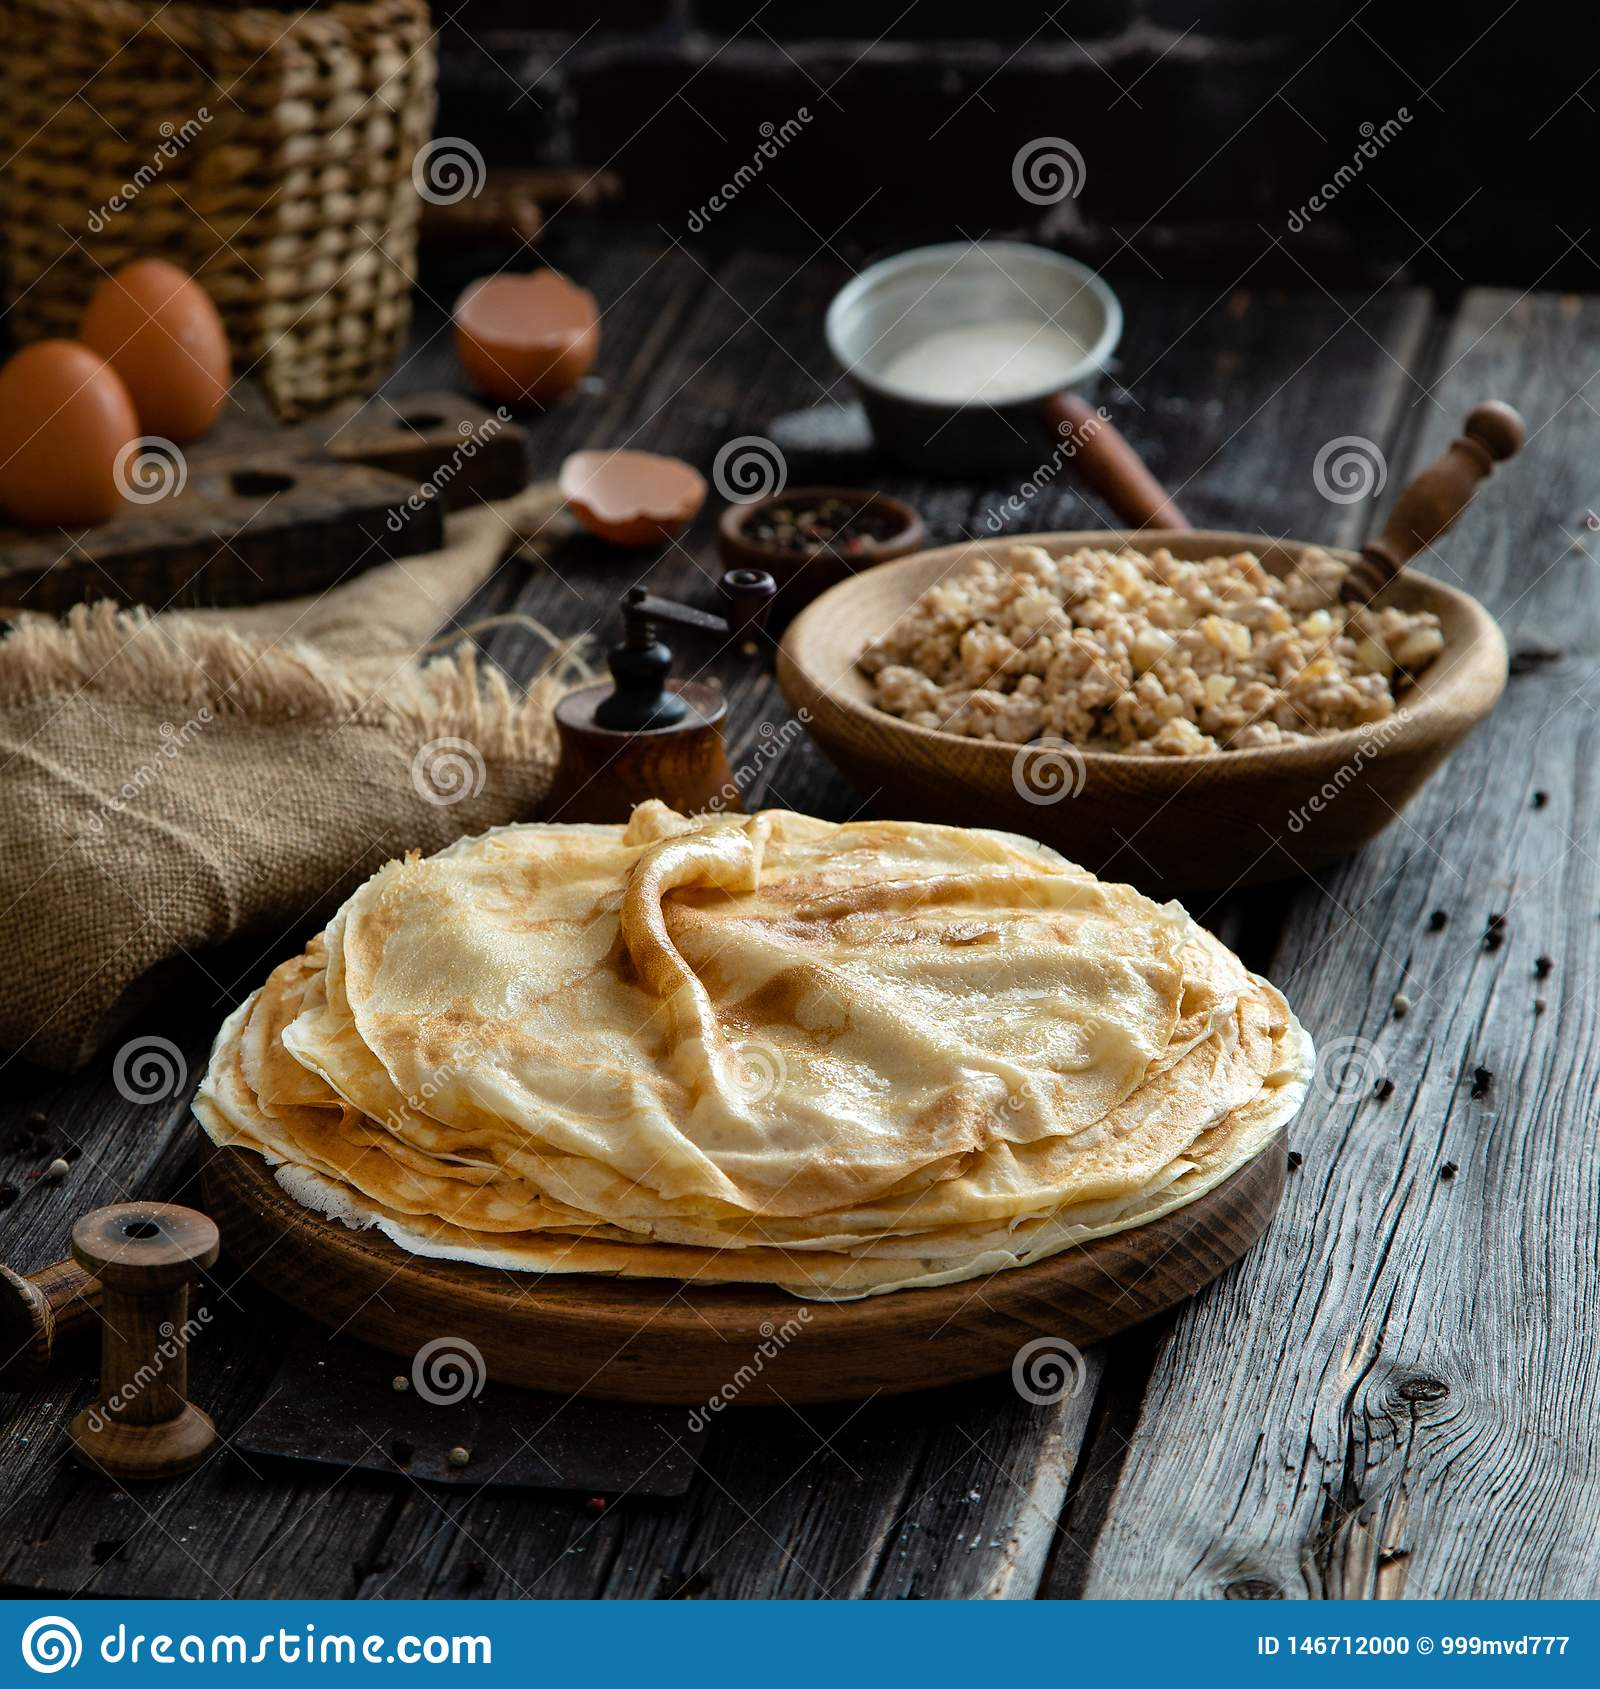 Homemade stack of crepes on wooden plate stand on rustic table with plate of ground fried beef